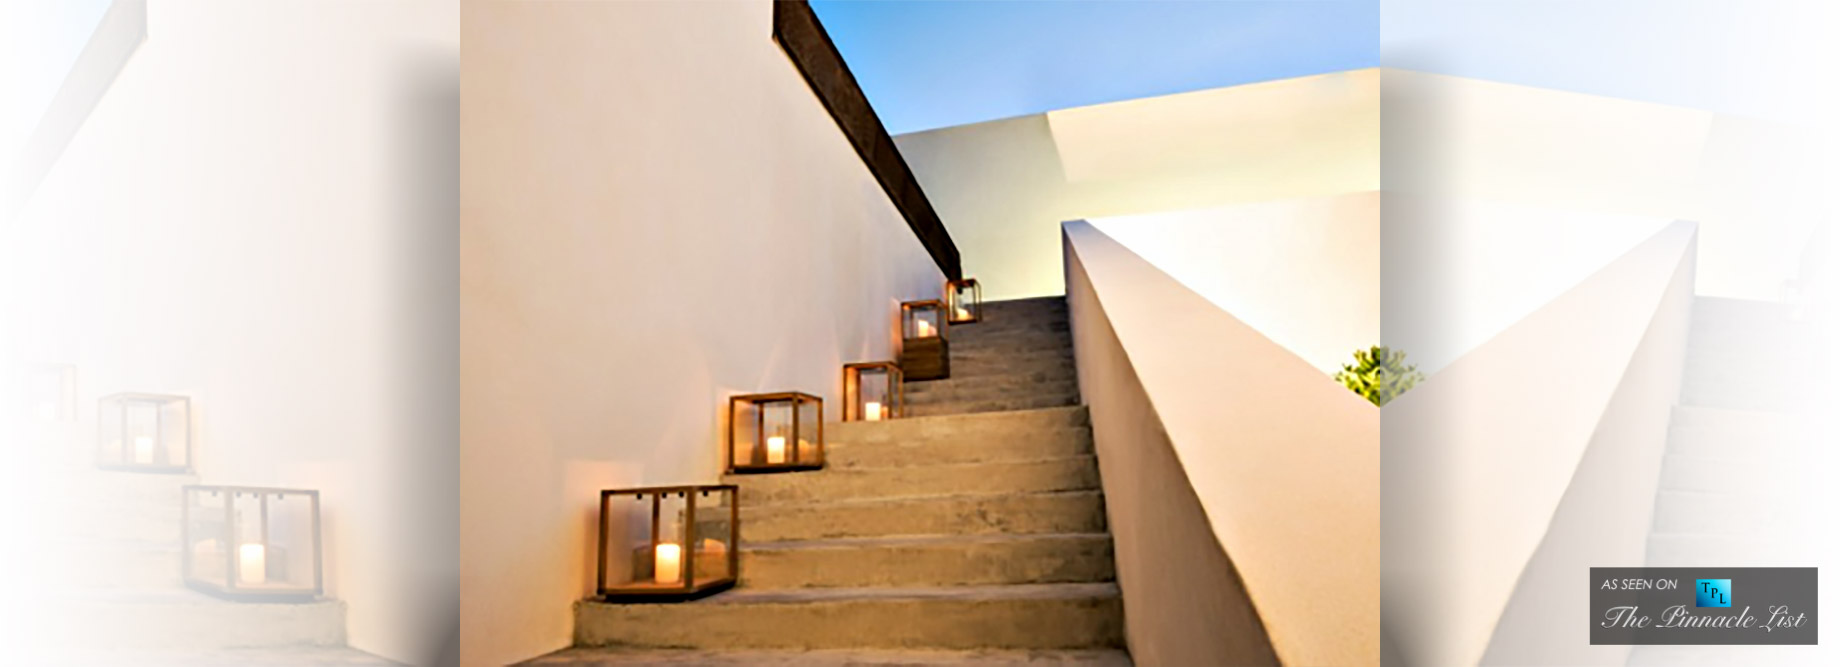 Mood Lighting - Outdoor Luxury Living with Furniture for Australian Winter Entertaining